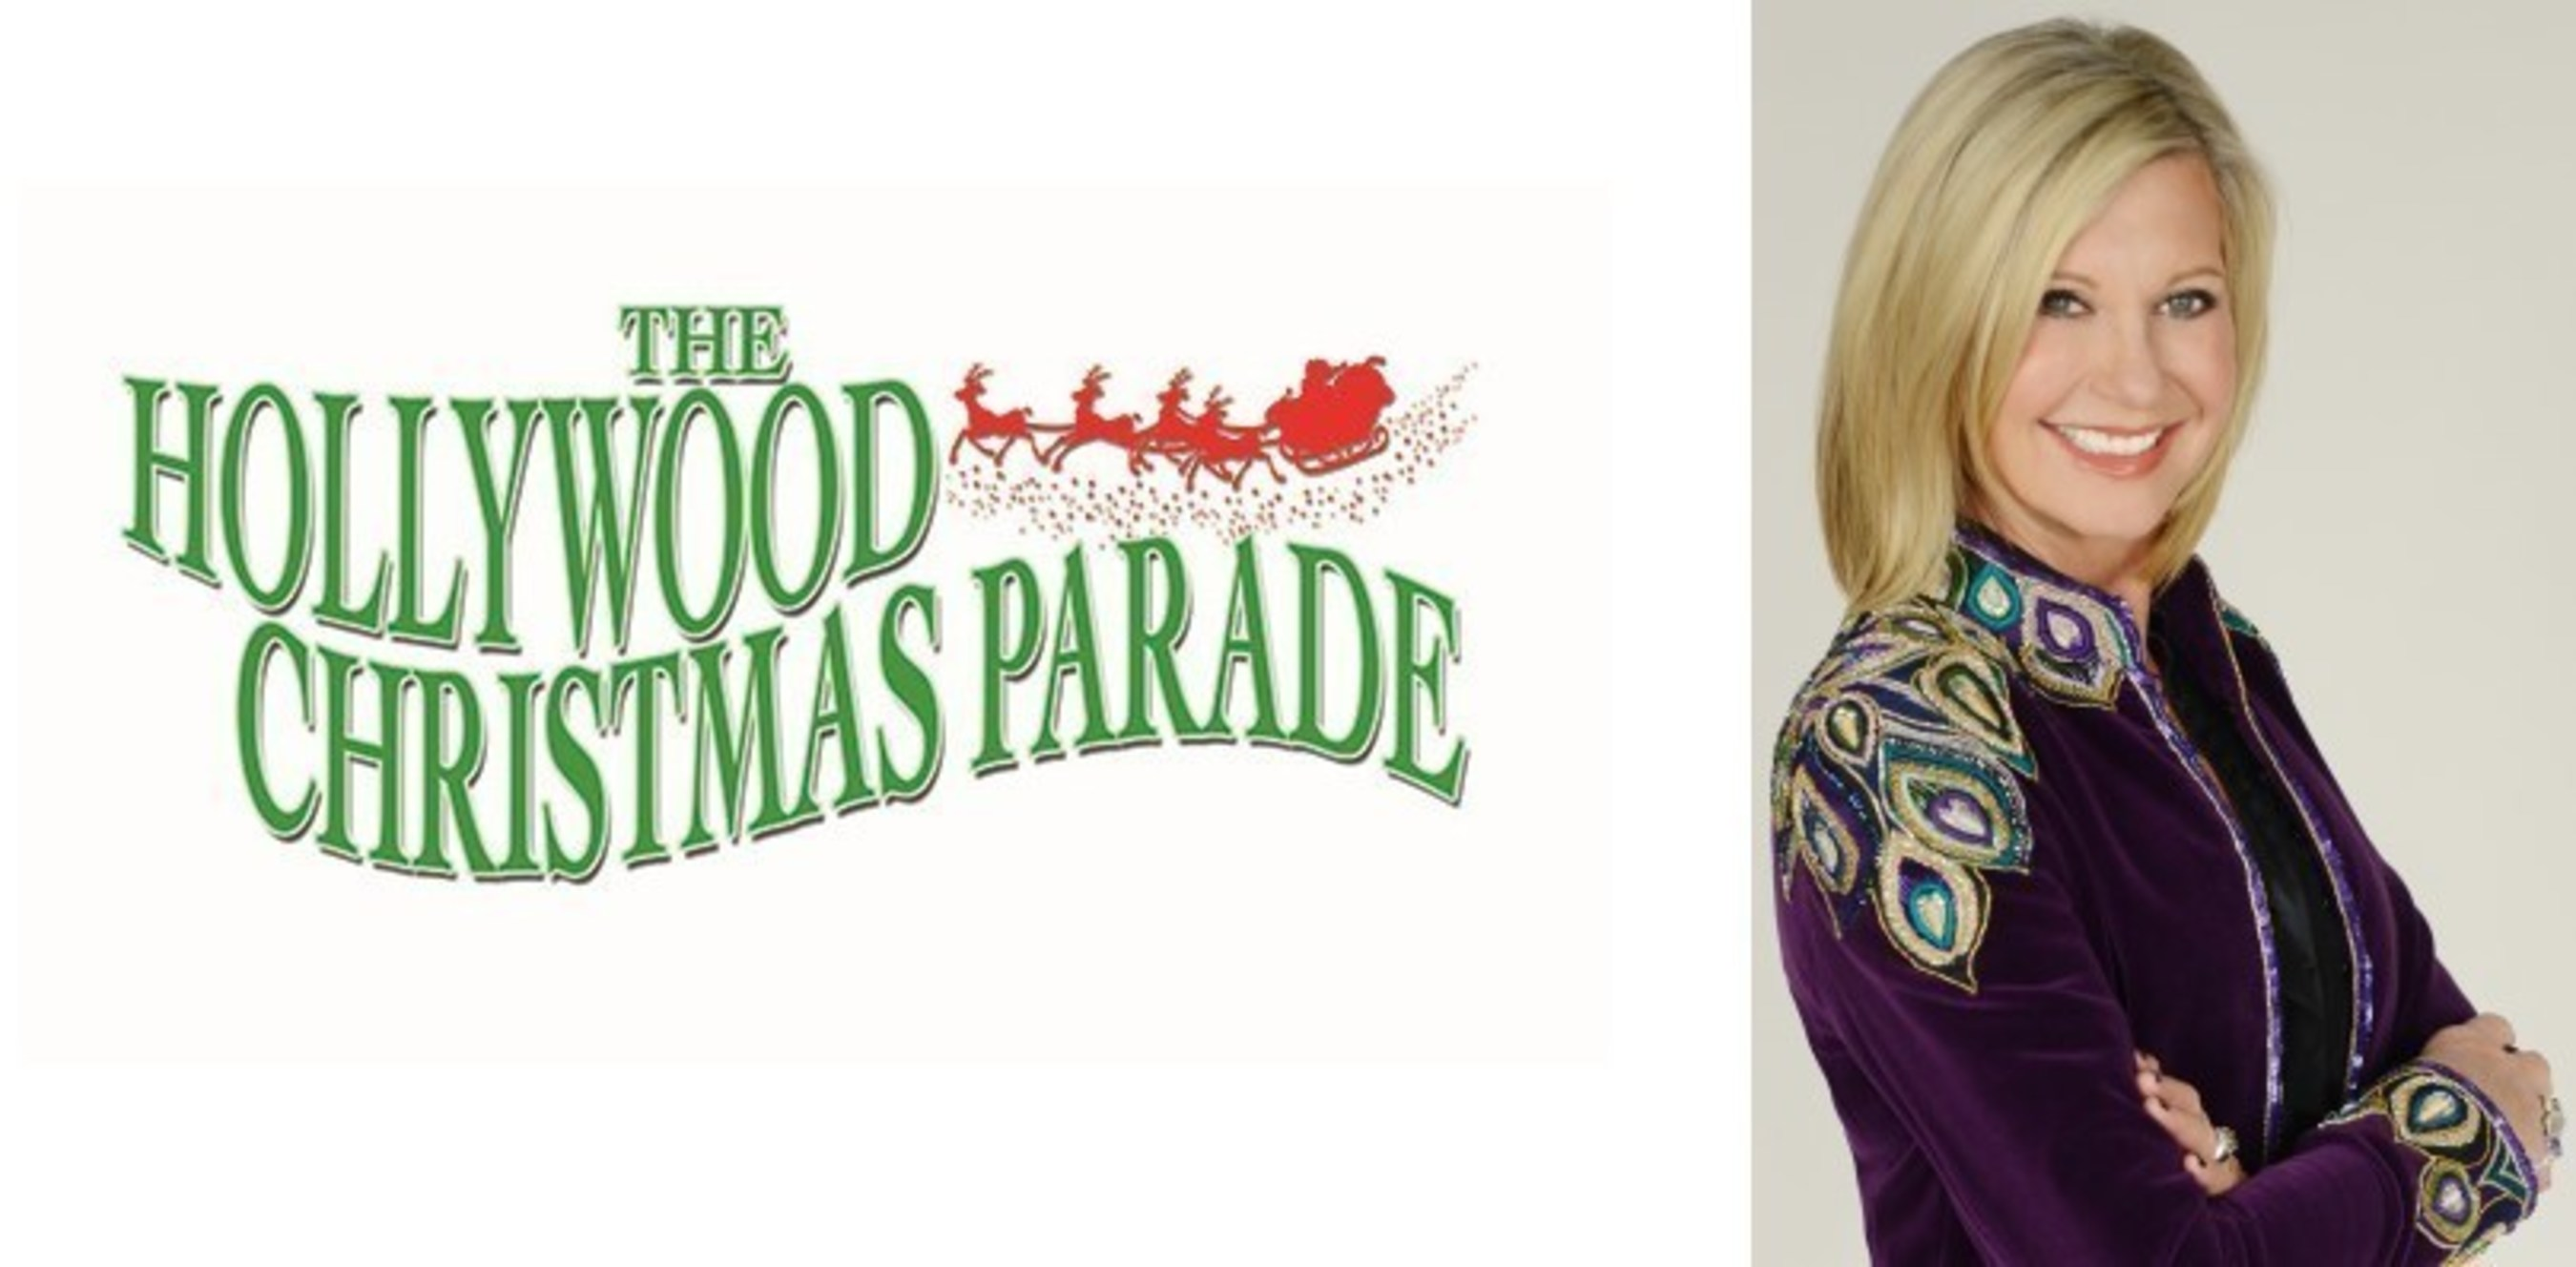 The Hollywood Christmas Parade Announces Grand Marshal Olivia Newton-John For Big 85th Anniversary Celebration To Be Held On November 27